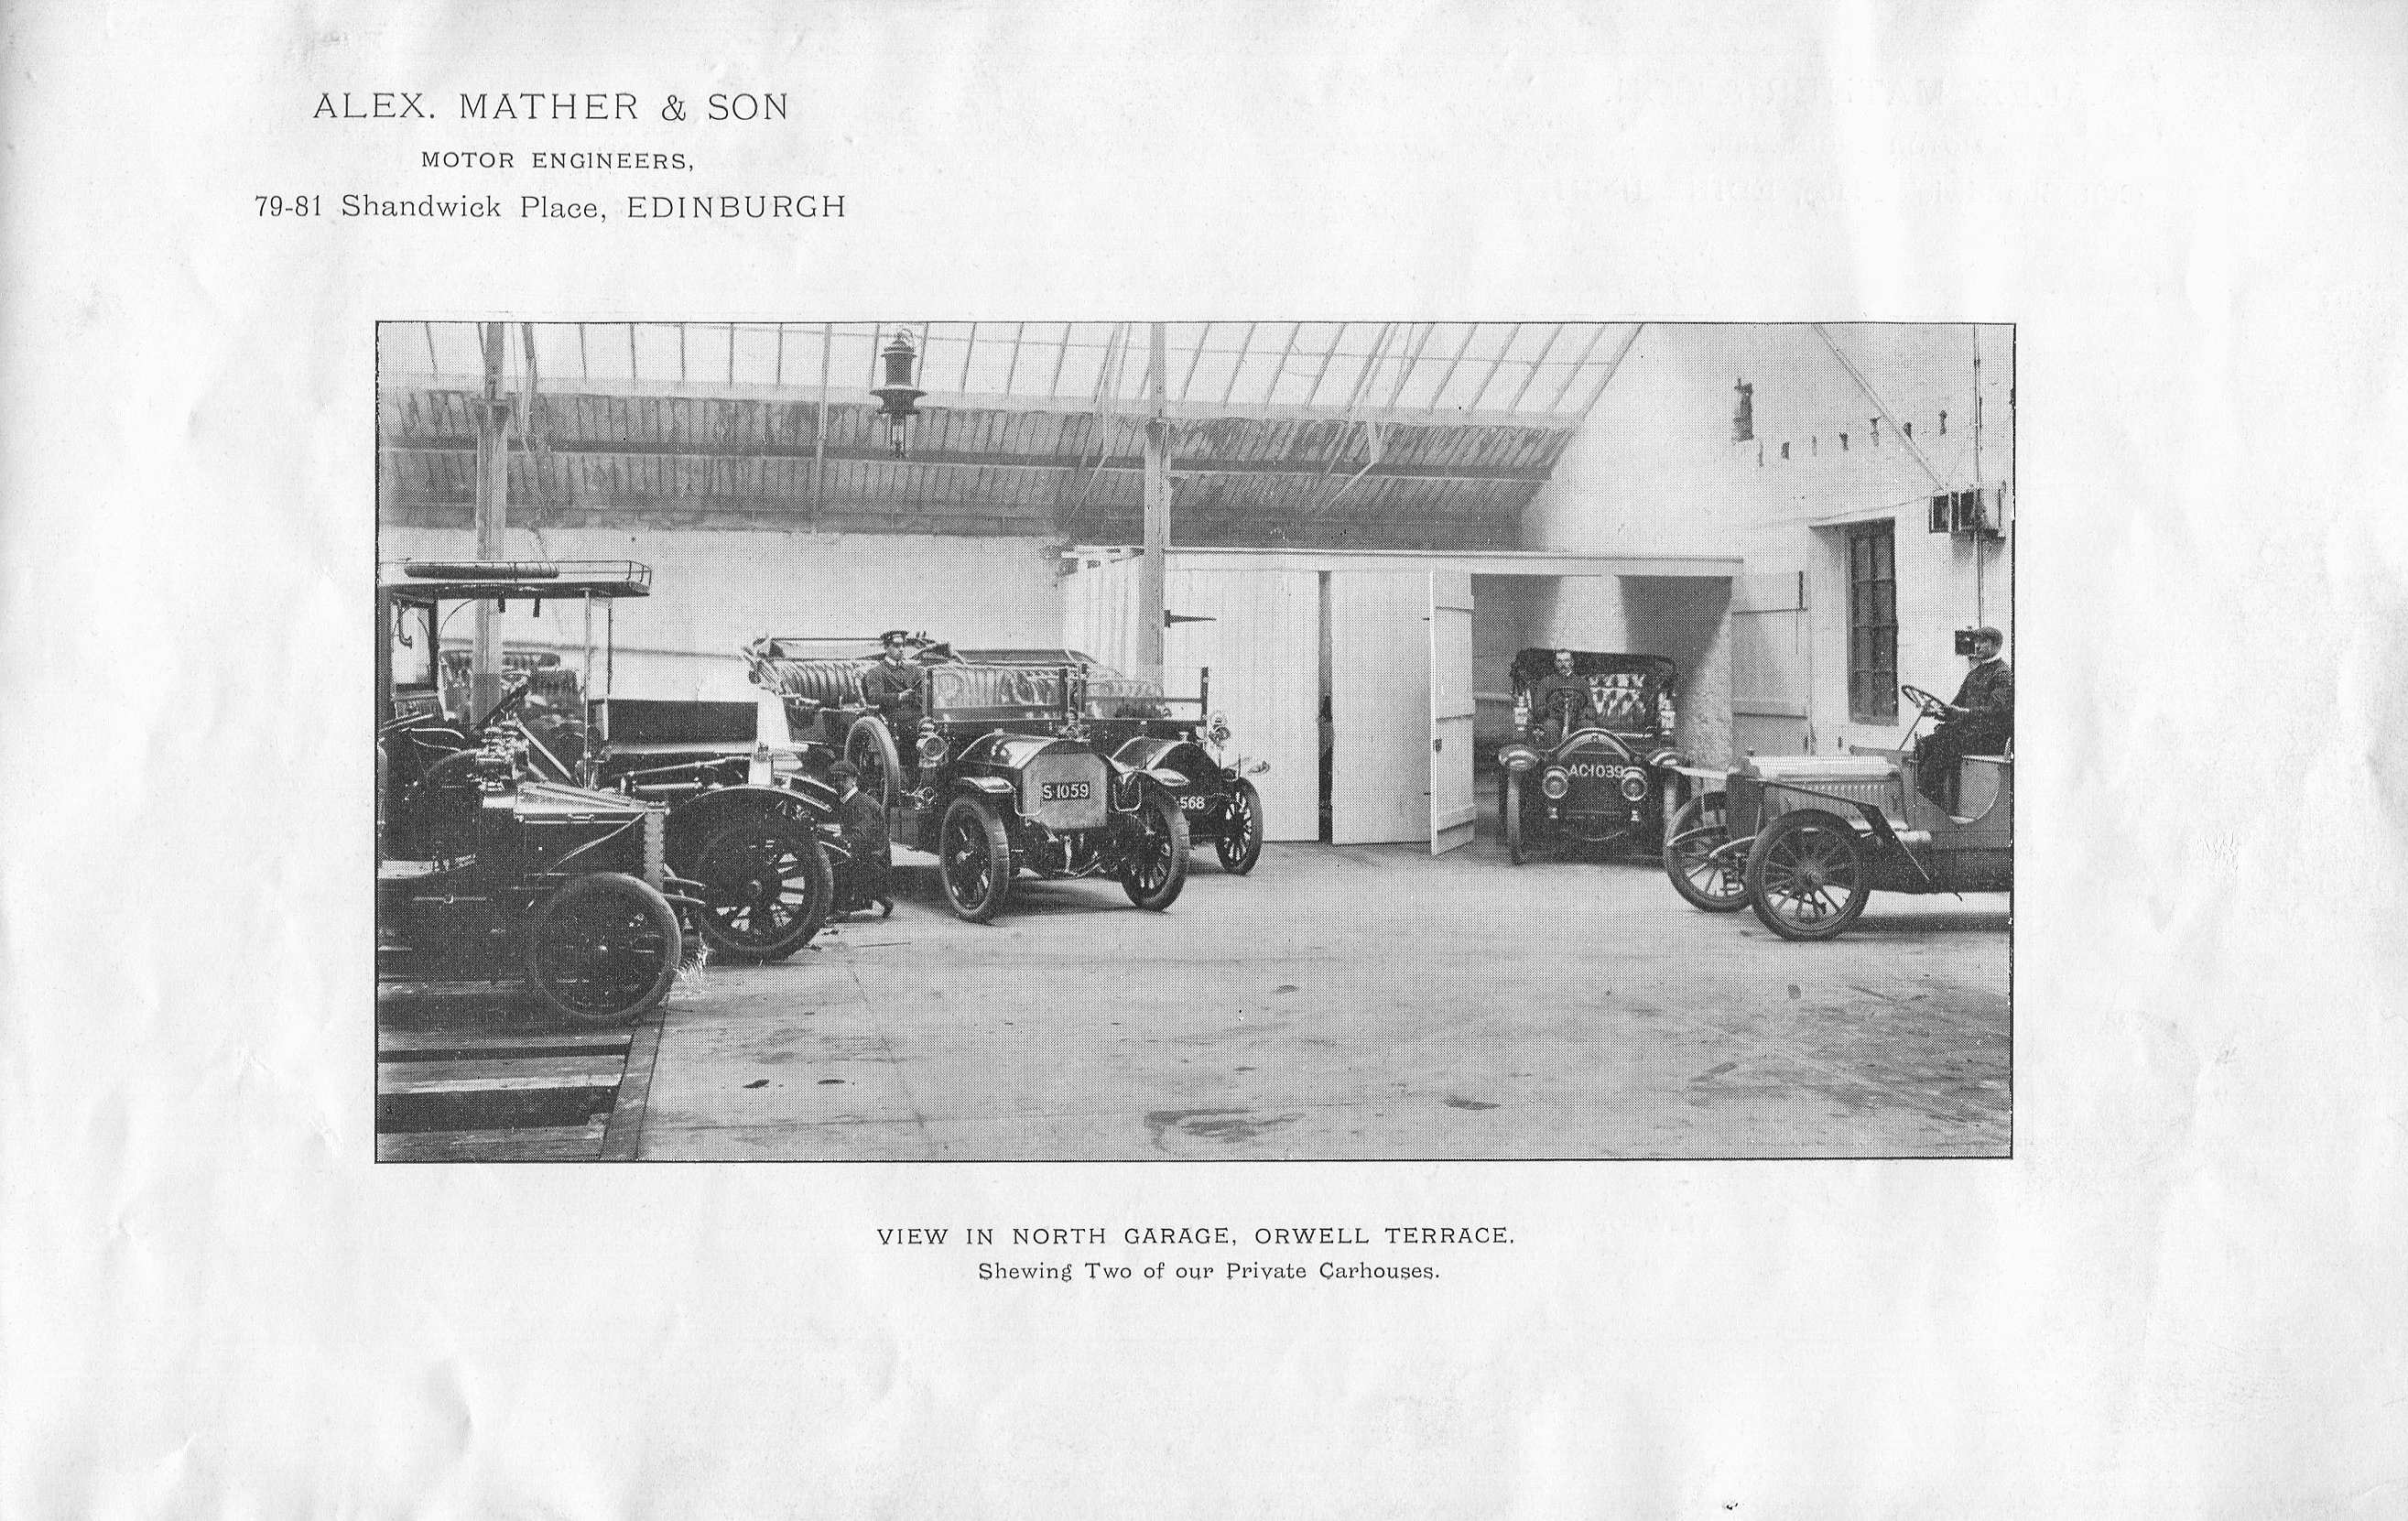 Alex Mather & Son, View In North Garage, Orwell Terrace 1920s